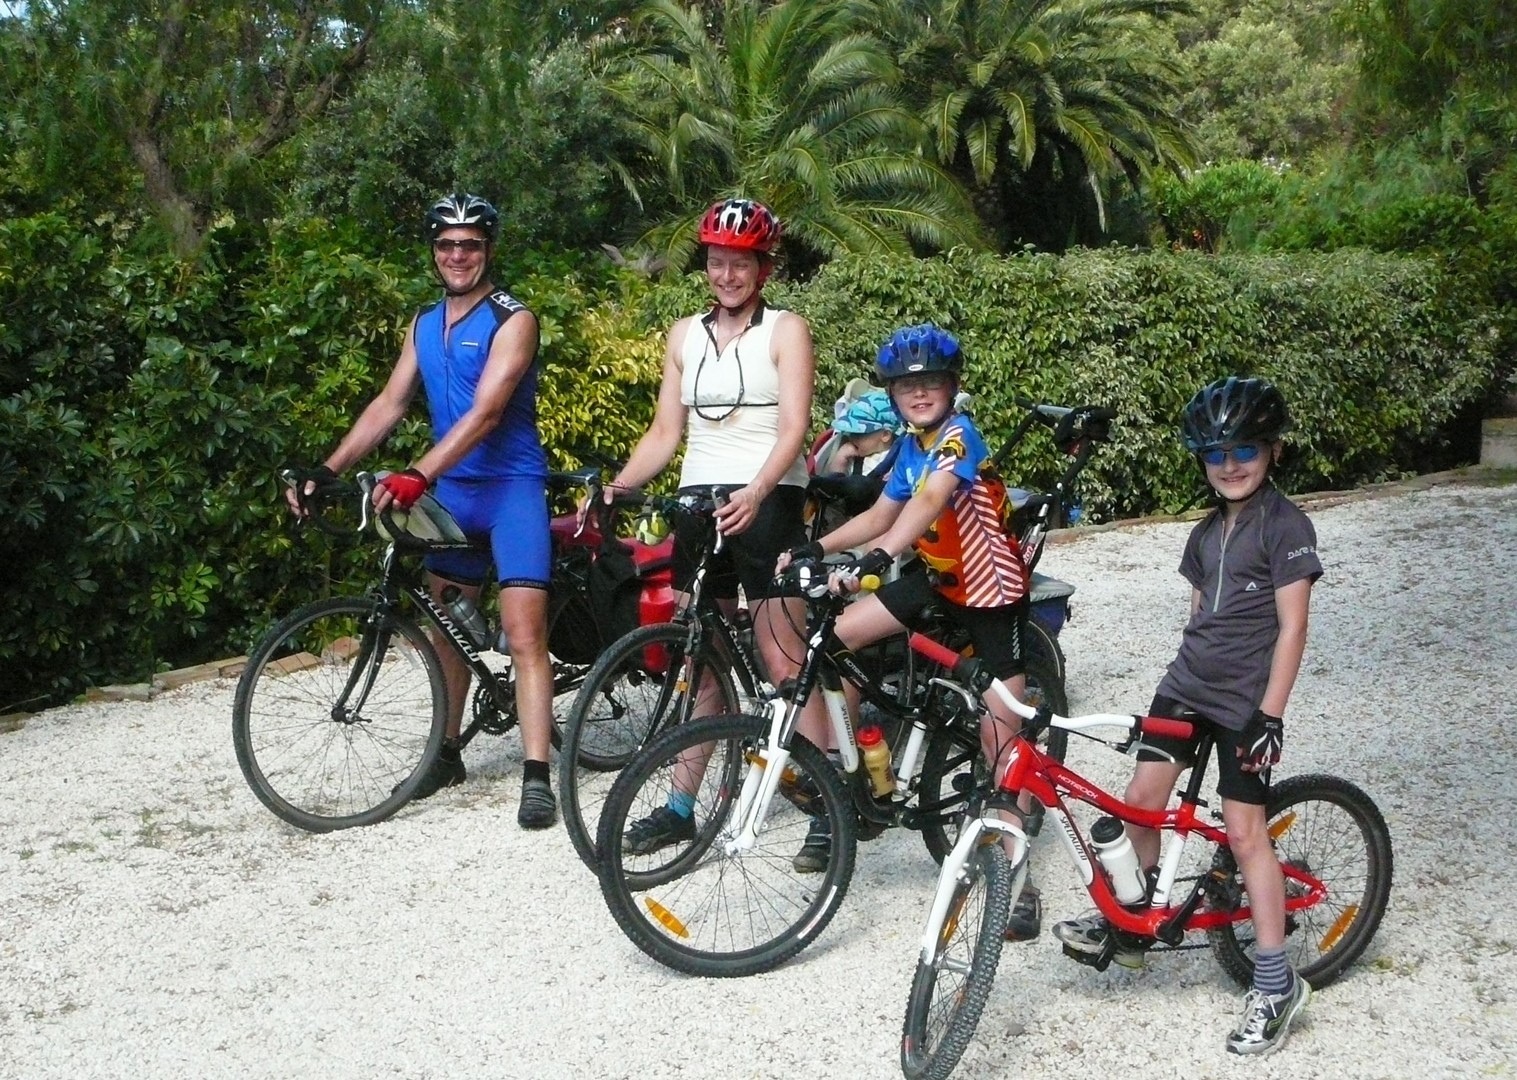 family-self-guided-cycling-holiday-coastal-adventurer.jpg - Southern Spain - Coastal Adventurer - Self-Guided Family Cycling Holiday - Family Cycling